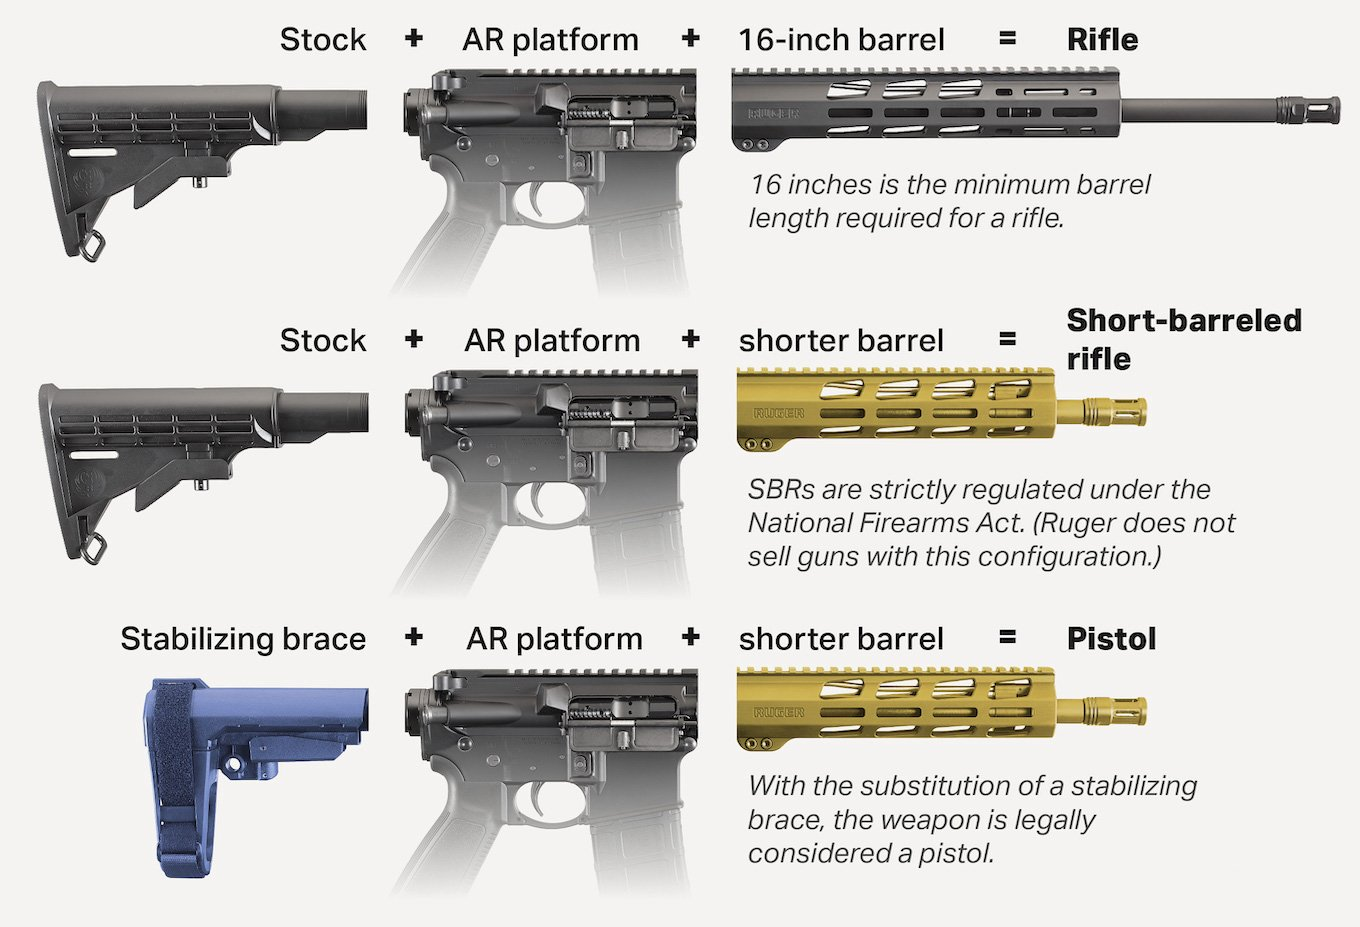 Facing GOP Pressure, the ATF Cancelled Review of Devices Now Implicated in Two Mass Shootings